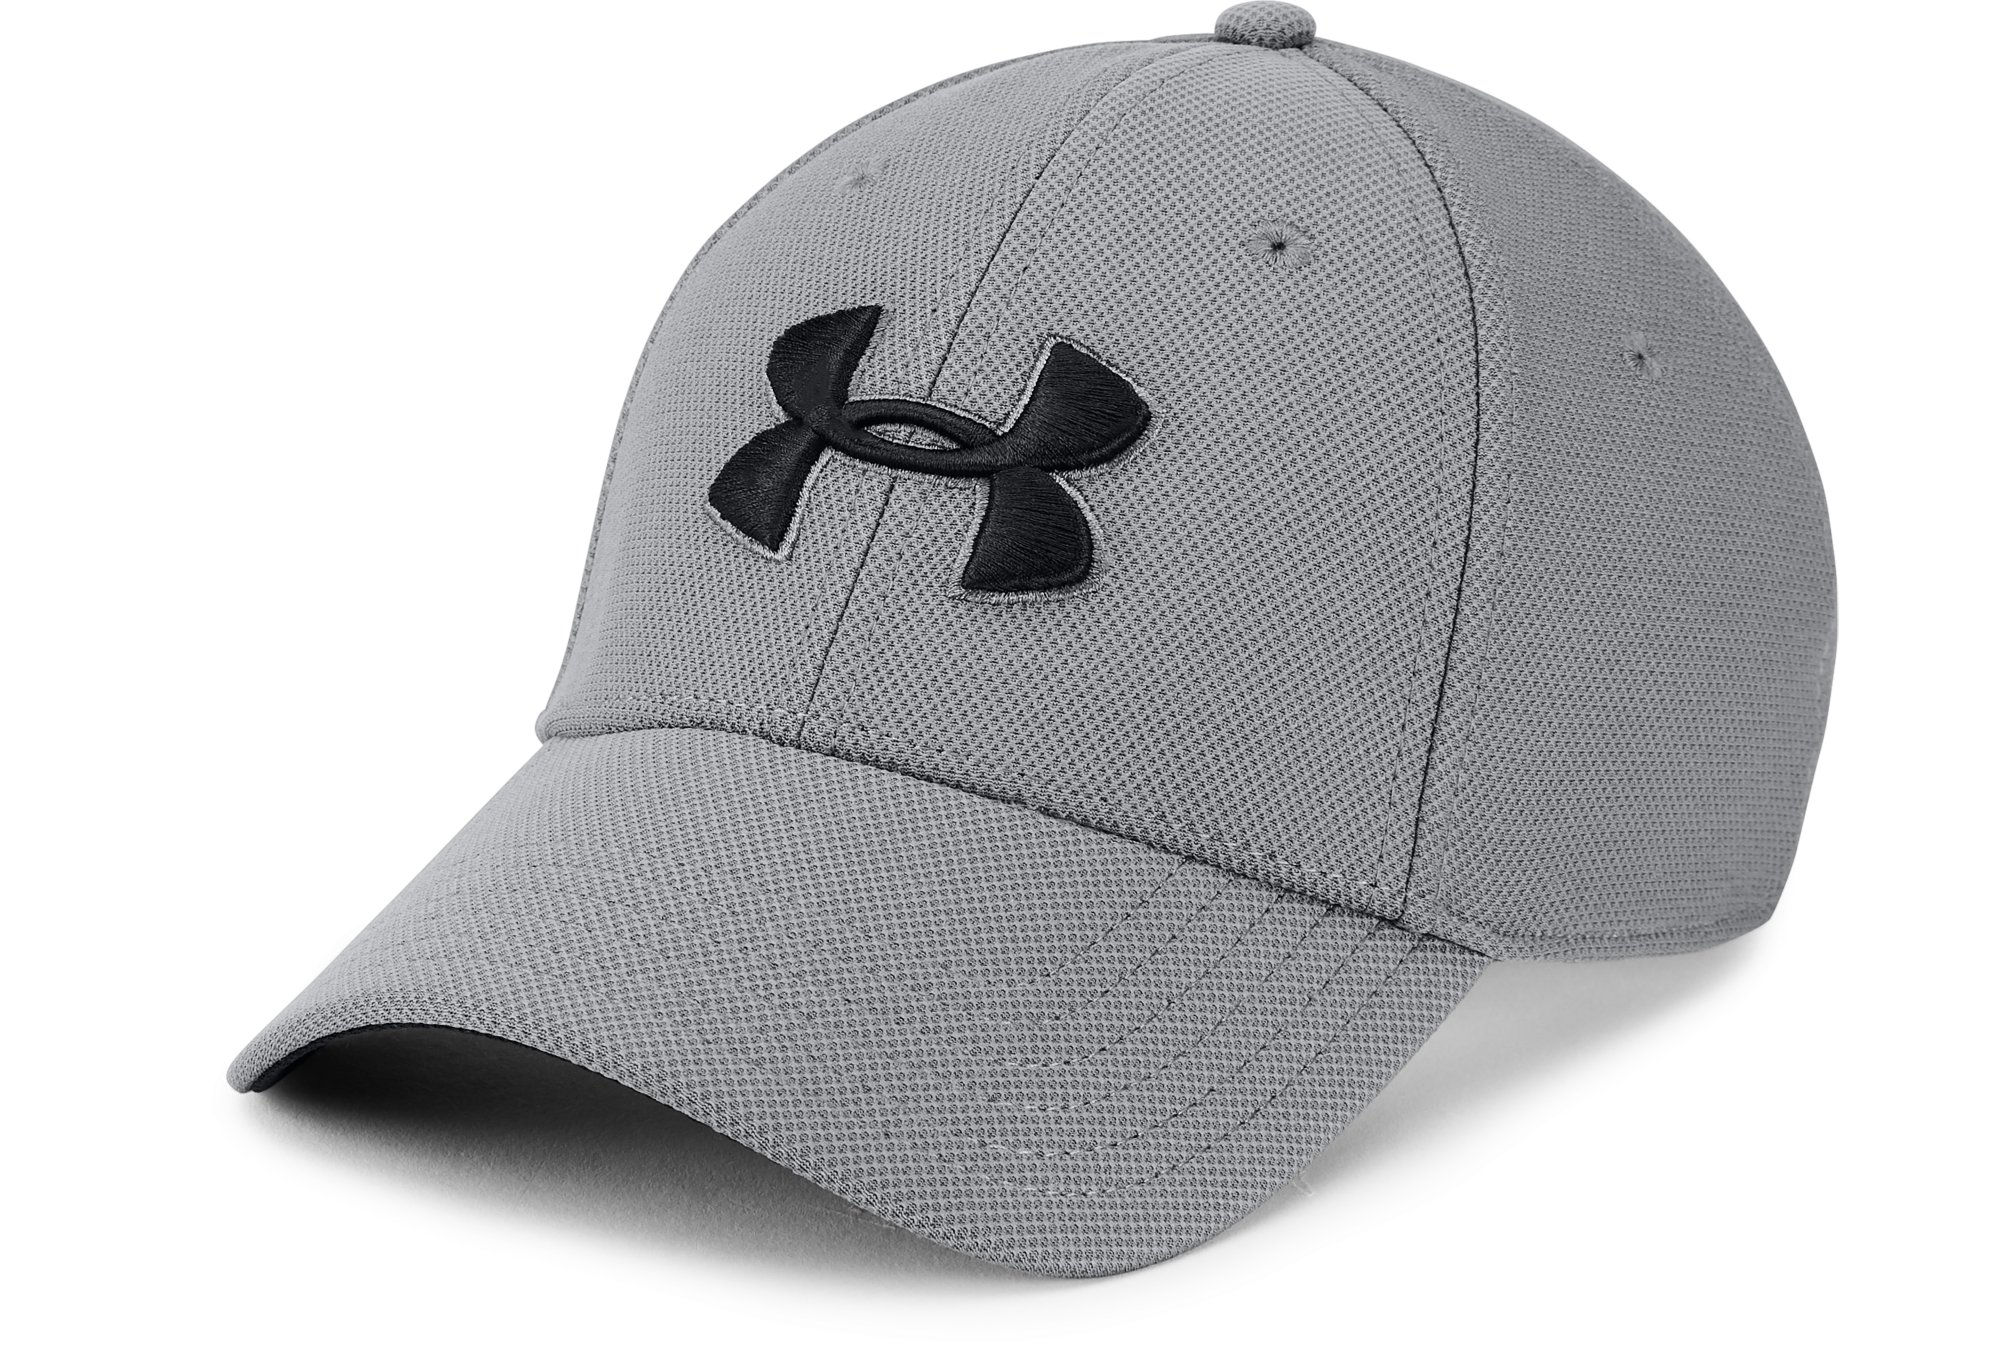 Viscoso Peregrinación repetir  Under Armour Blitzing 3.0 Cap Grey | Alltricks.com